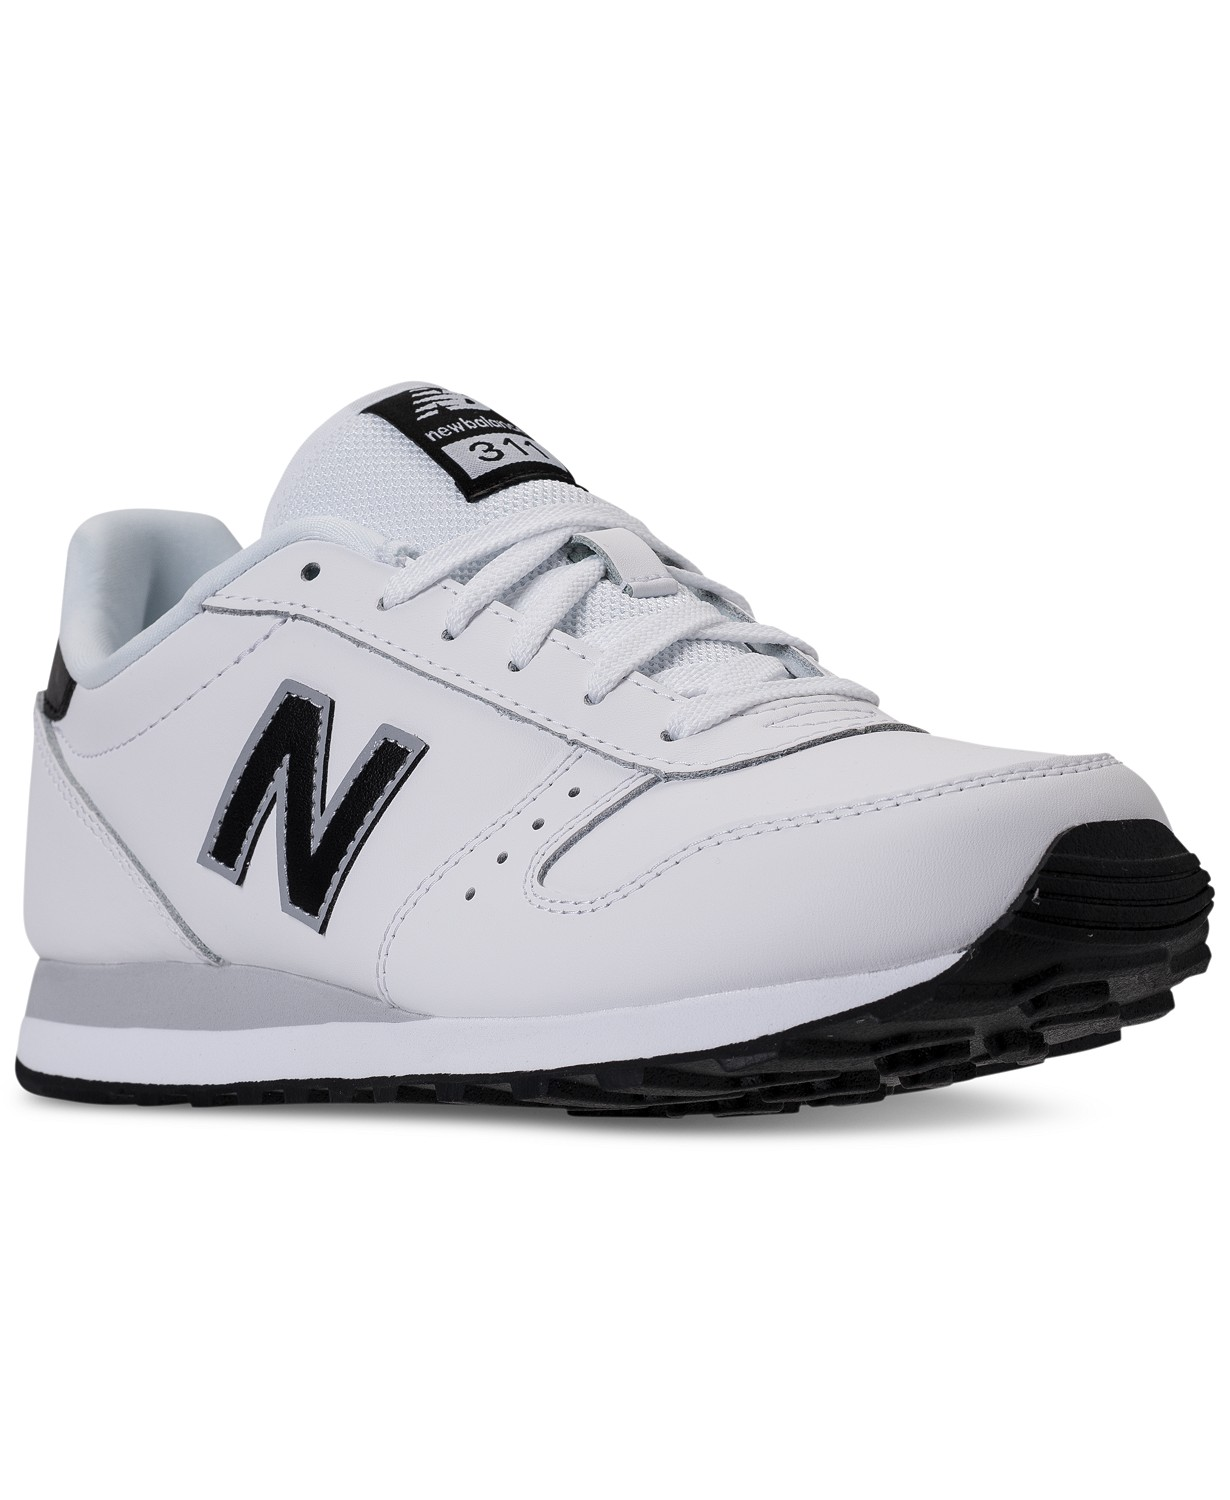 New Balance Men's 311 Leather Casual Sneakers